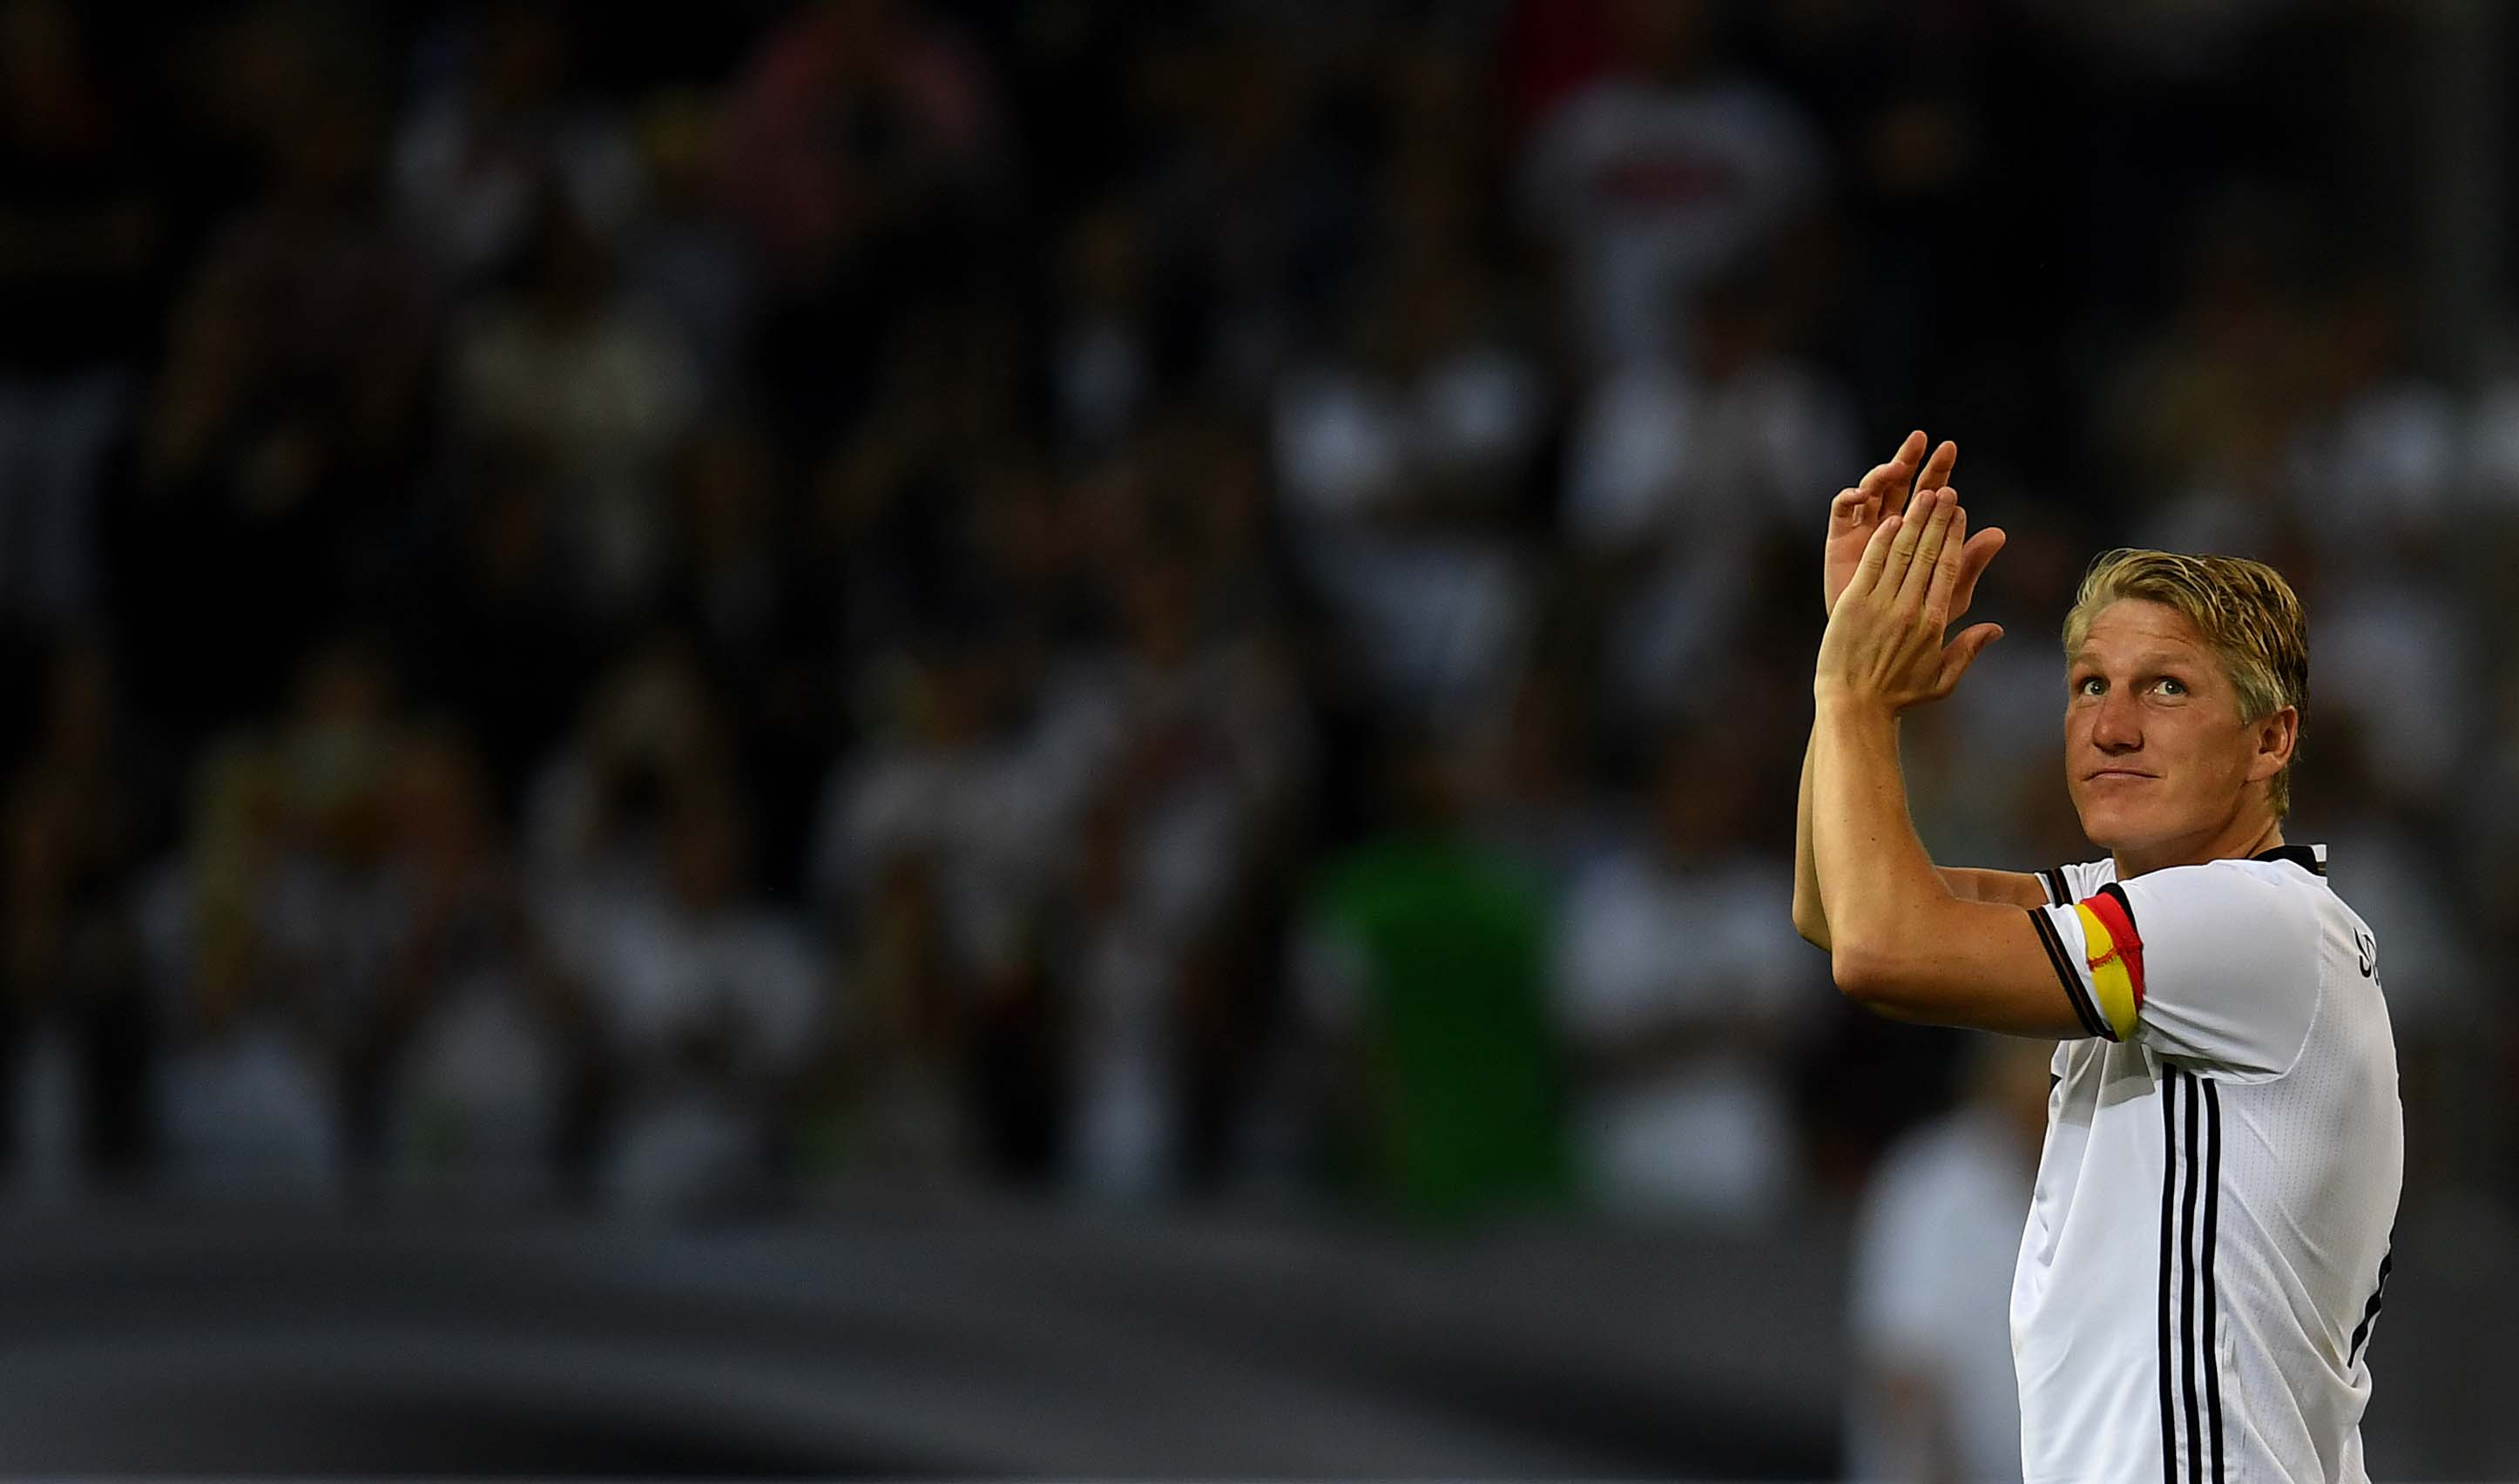 Germany's midfielder Bastian Schweinsteiger applauds after the football friendly match between Germany and Finland, his last game for his country, in Monchengladbach, western Germany on on August 31, 2016. / AFP PHOTO / PATRIK STOLLARZ